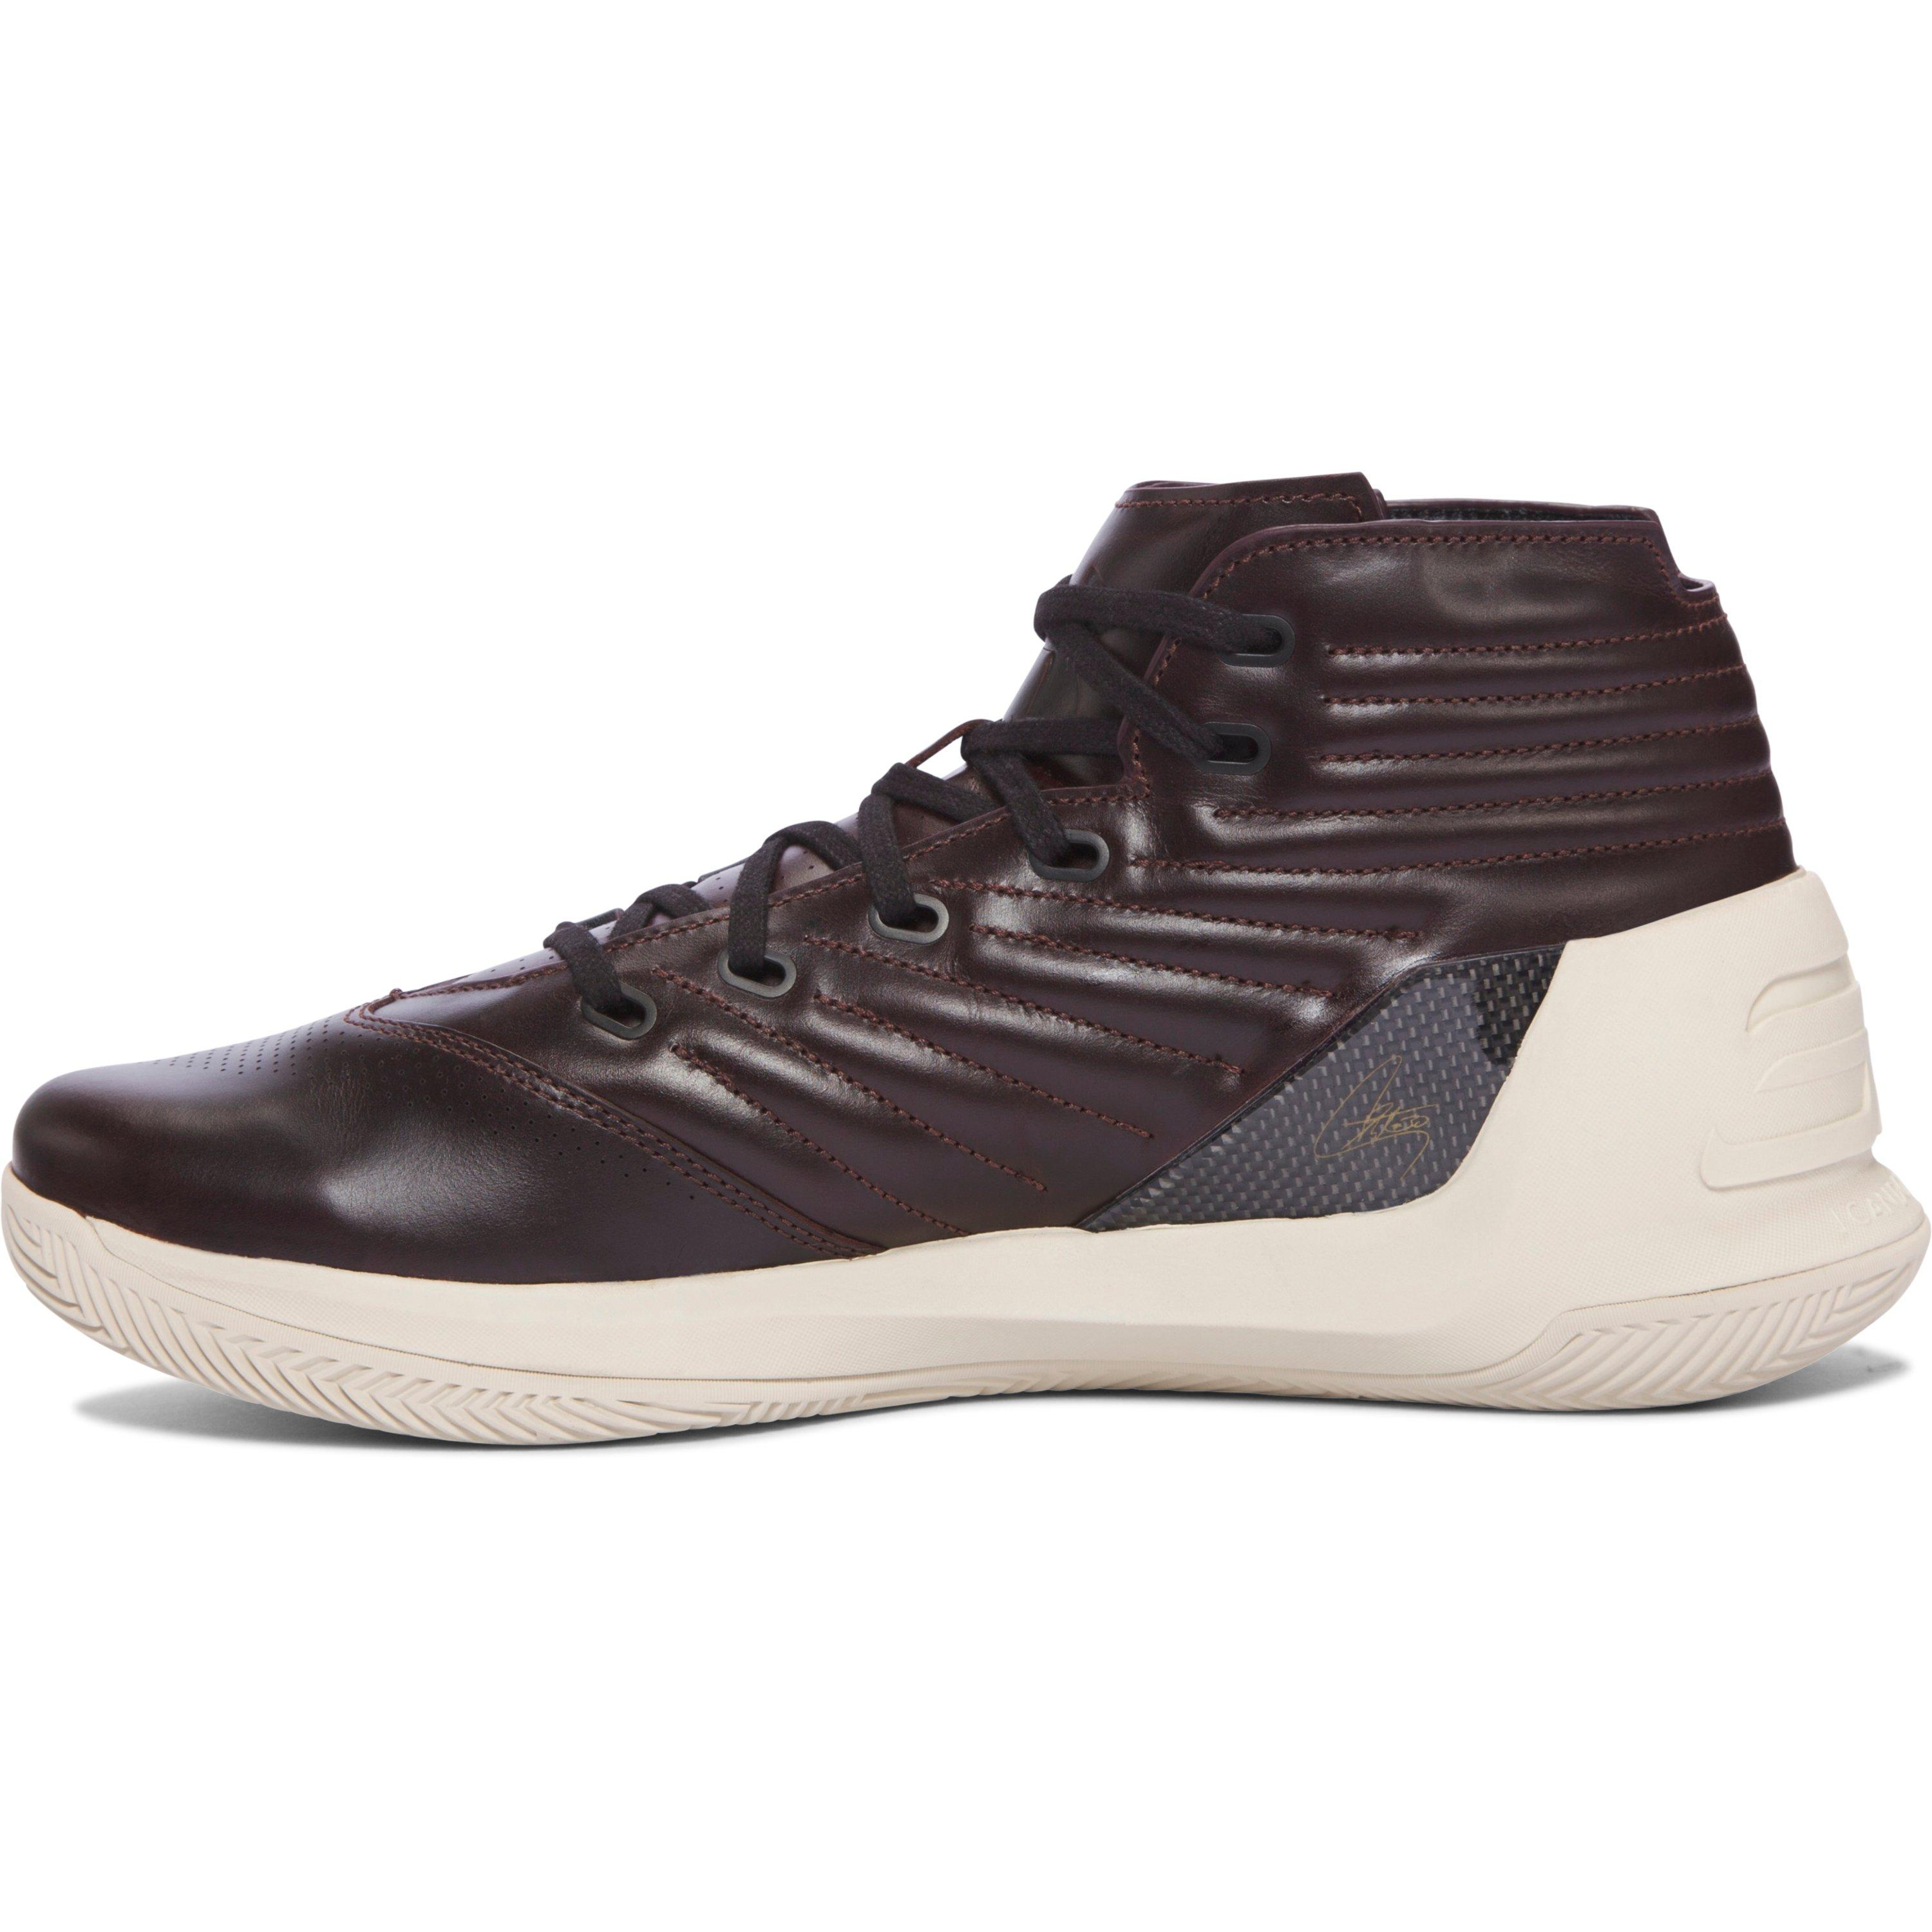 new products 56742 0cca8 Under Armour Men s Ua Curry Lux Oxblood Leather Basketball Shoes in ...